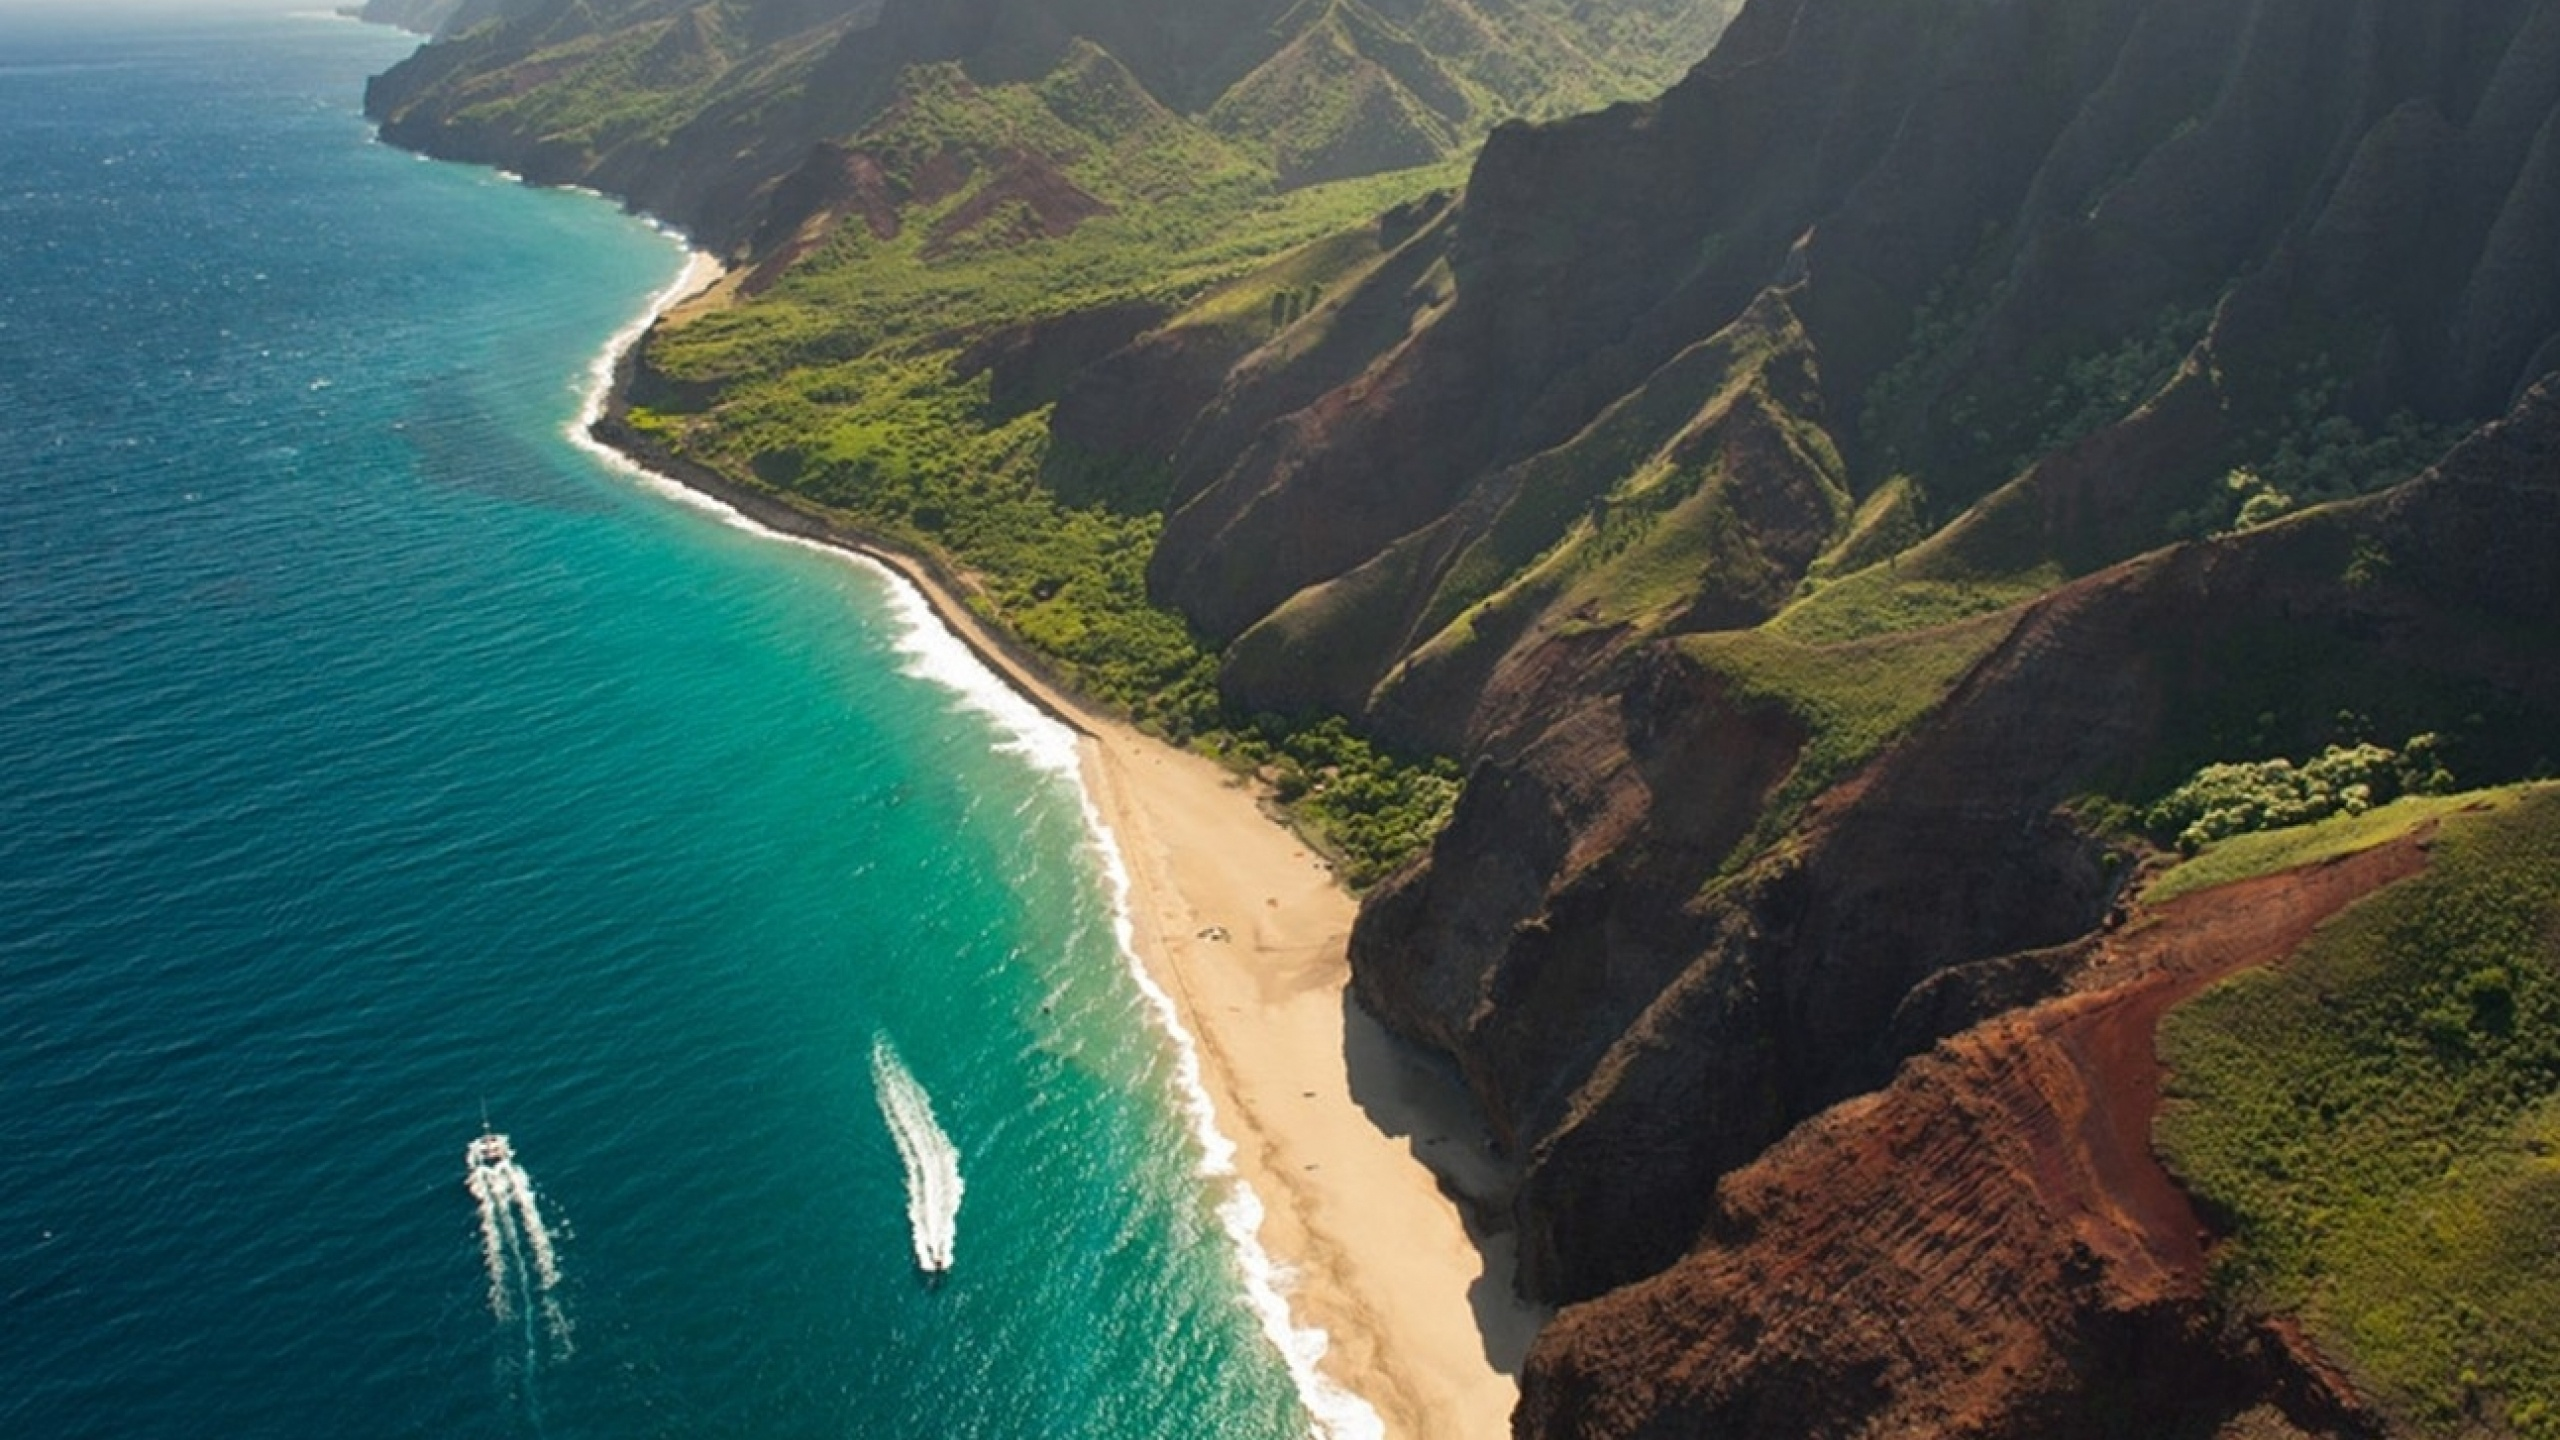 Kauai Wallpapers 54 Images: 2560x1440 Cliffs Ocean Kauai Beach Hawai Desktop PC And